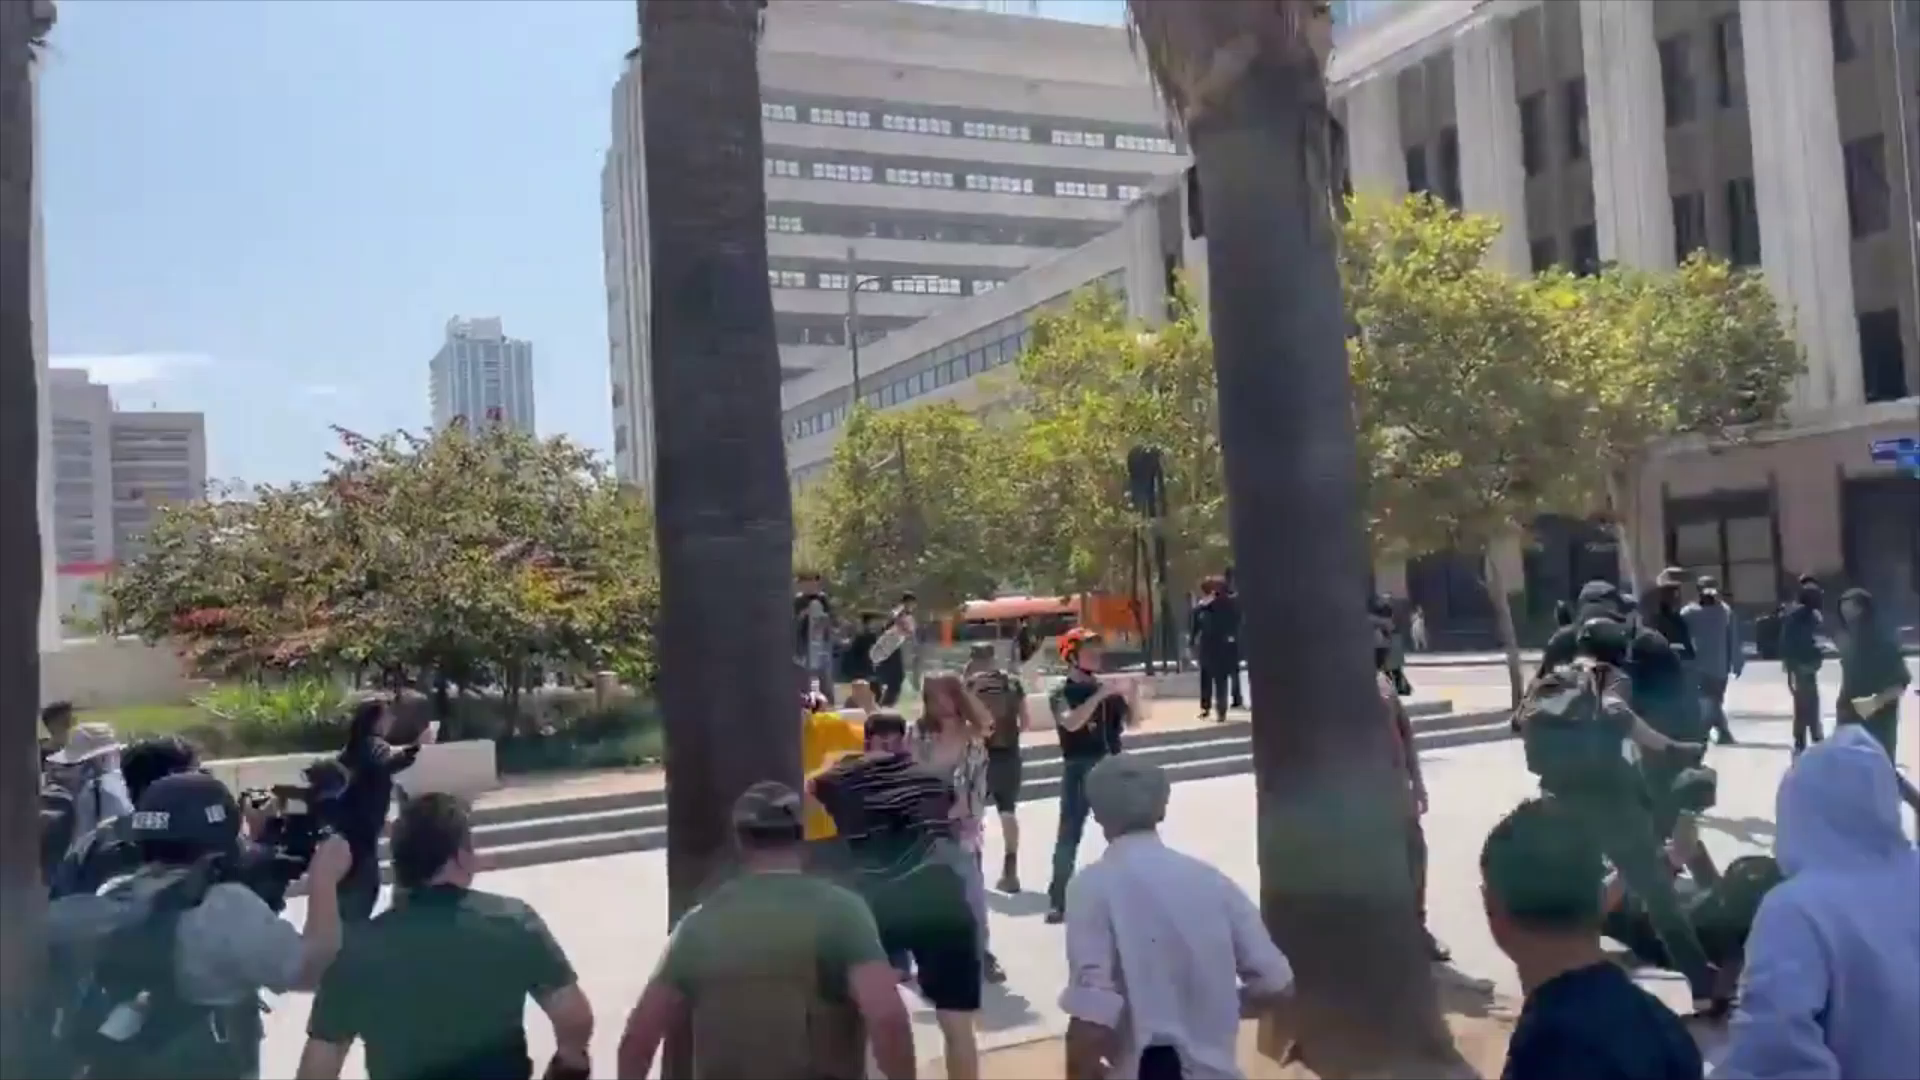 LA, saturday. One person stabbed as COVID anti-vaxxers (MAGA Patriots) and counter demonstrators(ANTIFA Traitors) clash in front of L.A. City Hall.